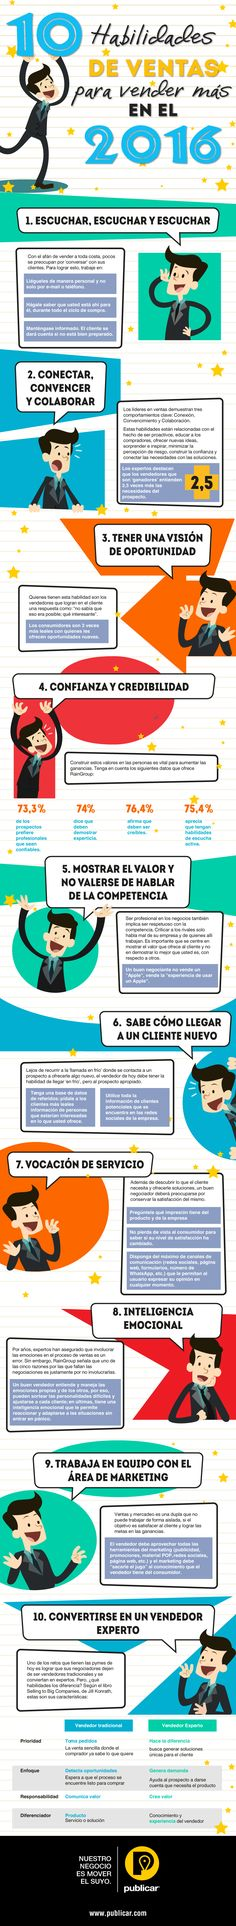 10 habilidades de venta para vender más en 2016 #infografia #marketing